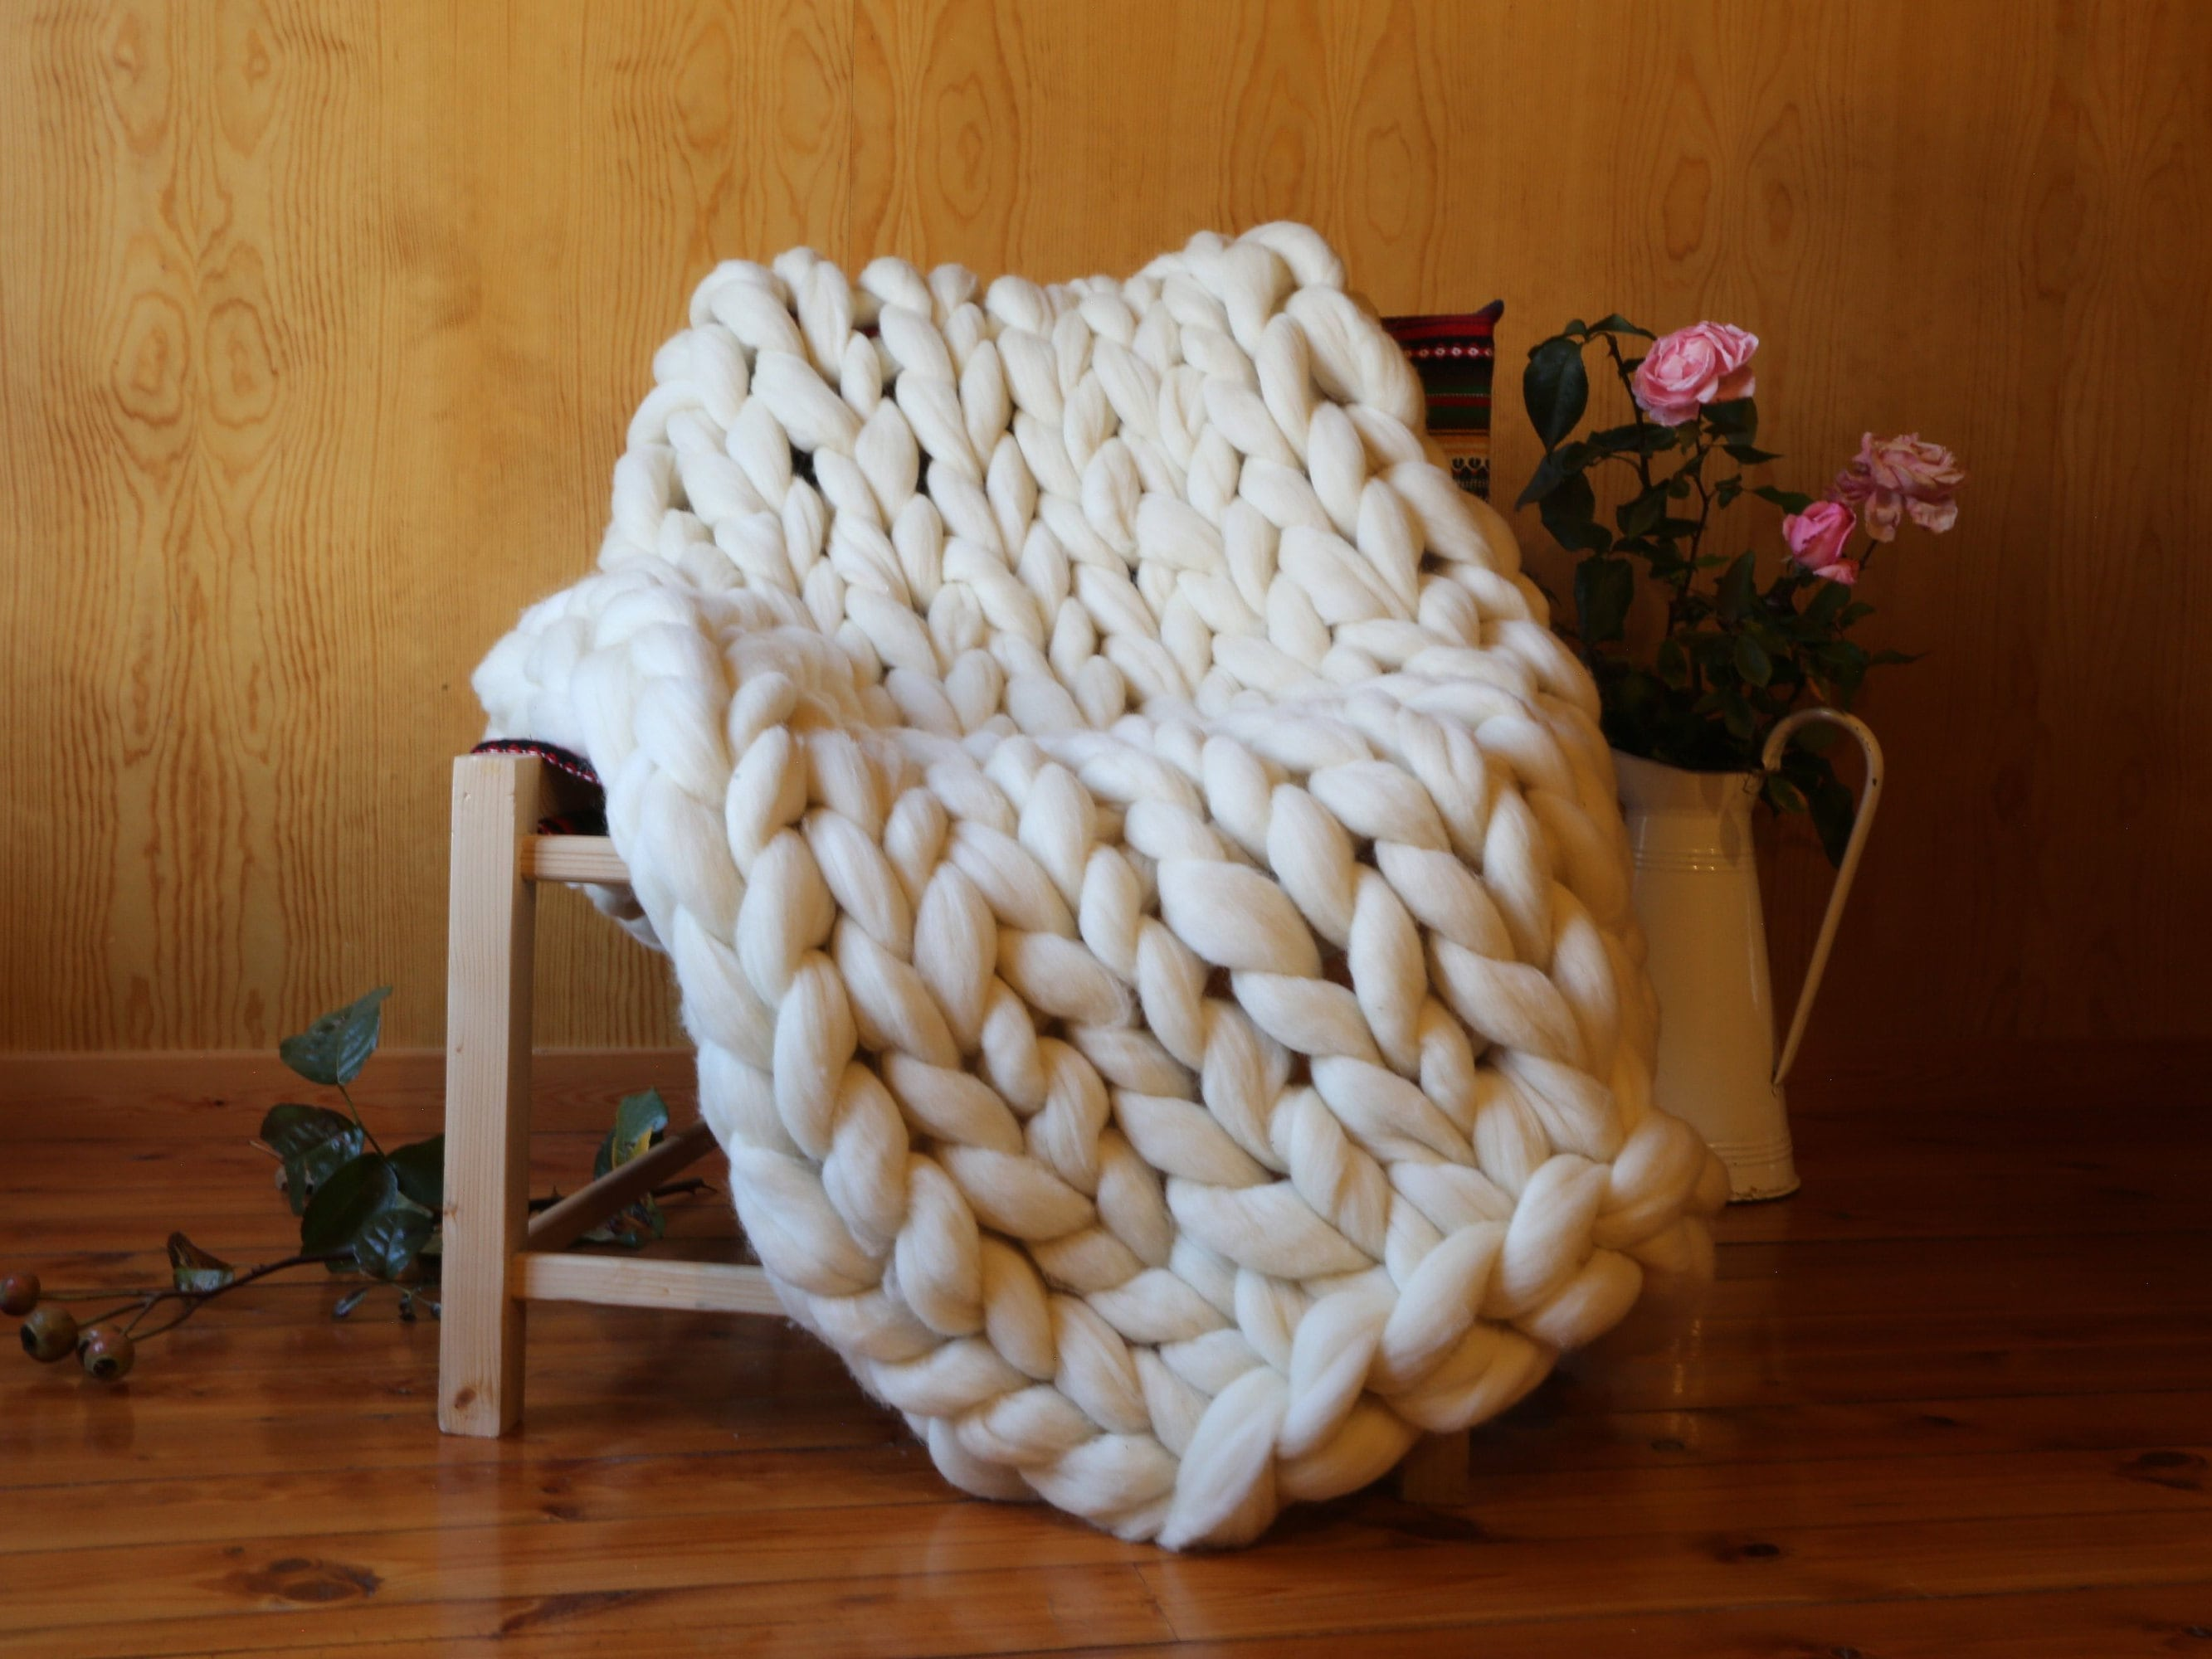 6d44a6d6a127f7 Premium chunky knit blanket -special deco blanket - inspiring deco - XXL  blanket -Super Deco Ideas-Cozy deco home -Special gift for dad